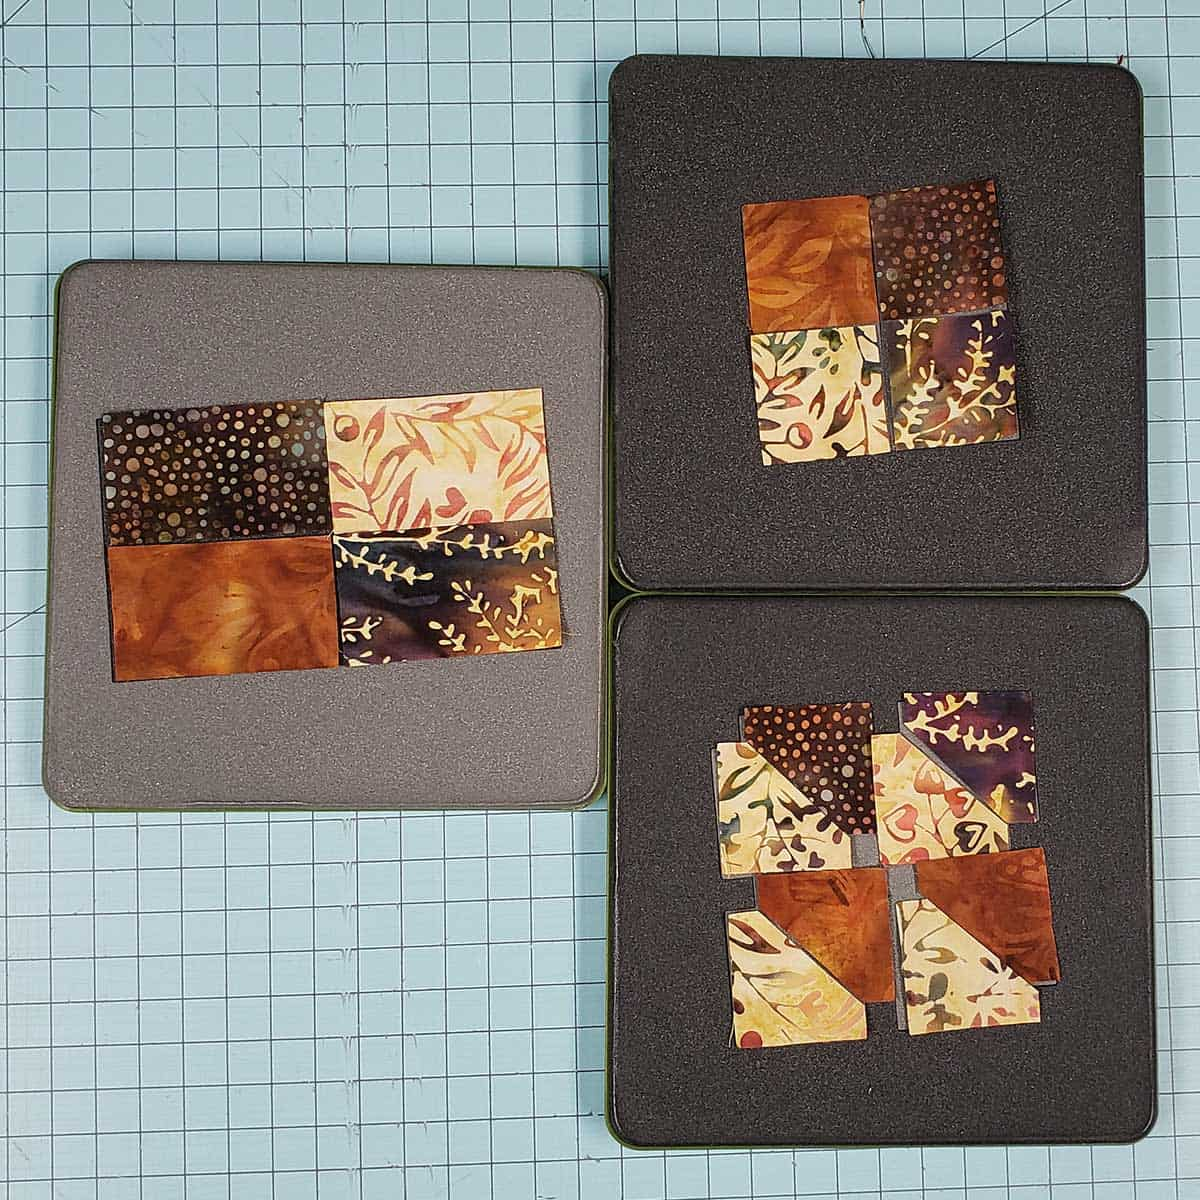 Using the AccuQuilt GO! cutter and 4-inch Qube dies